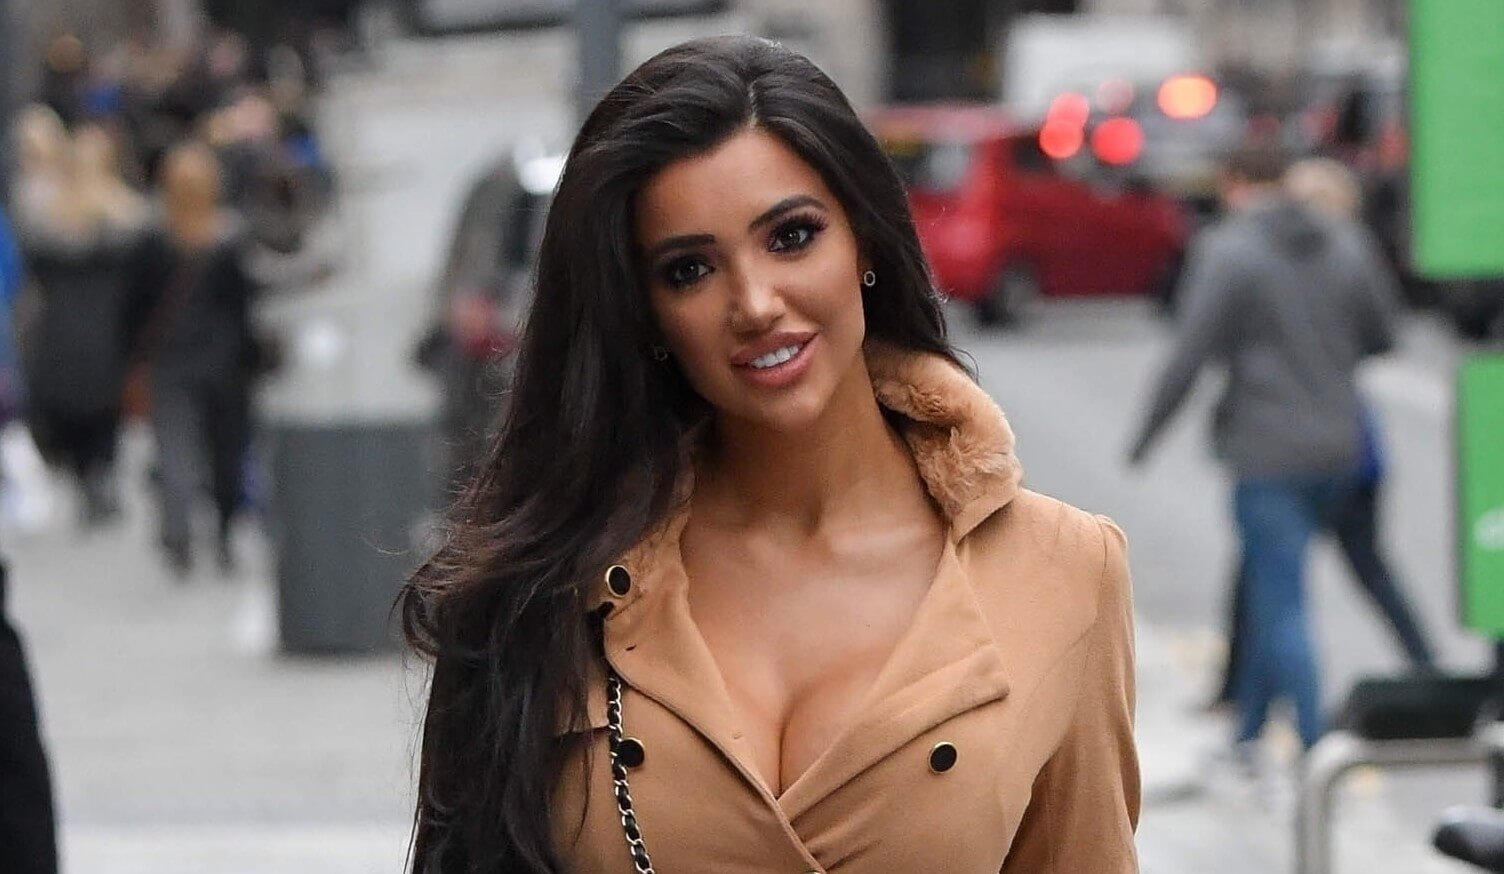 Chloe Khan Net Worth